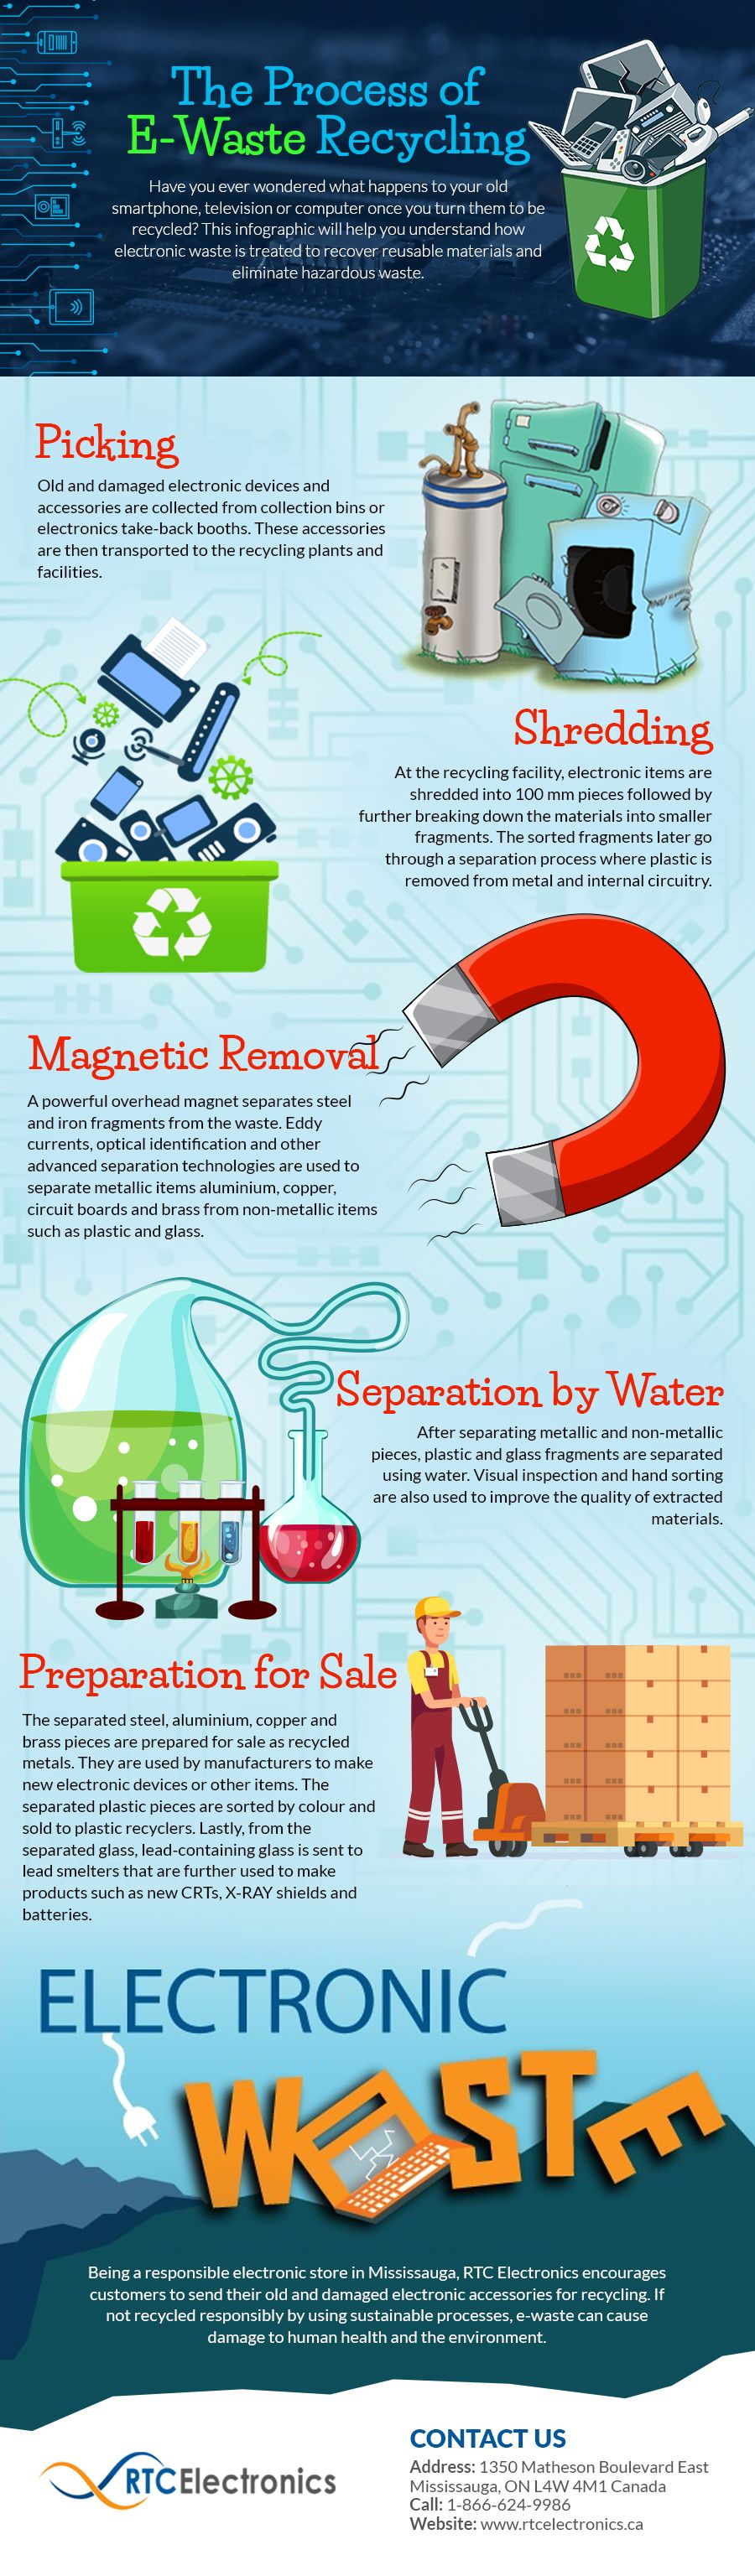 the process of e-waste recycling